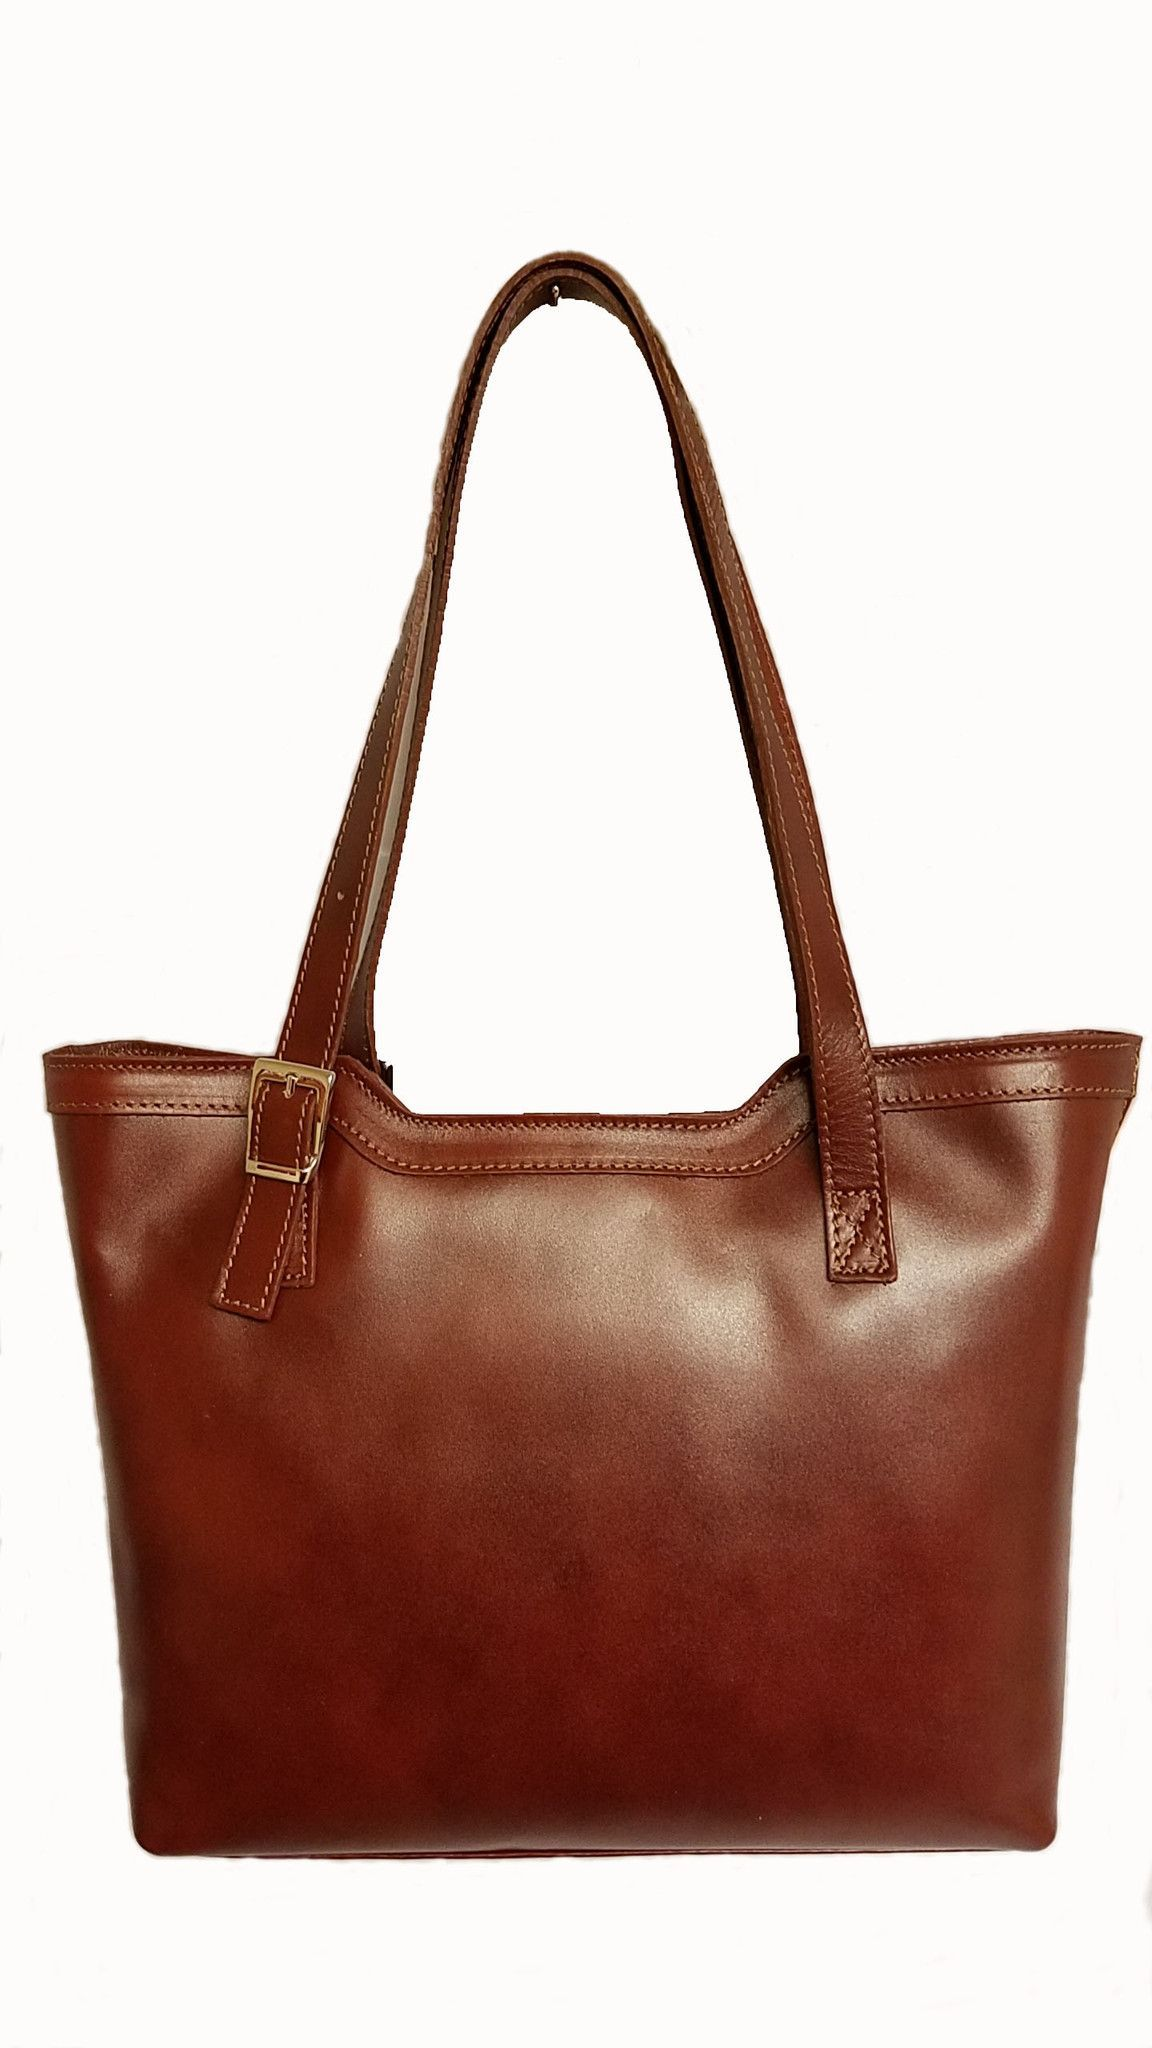 Bag genuine cowhide leather External material  cowhide leather tanned.  Inner Material  lining. Inside  2 compartments effec524b7817